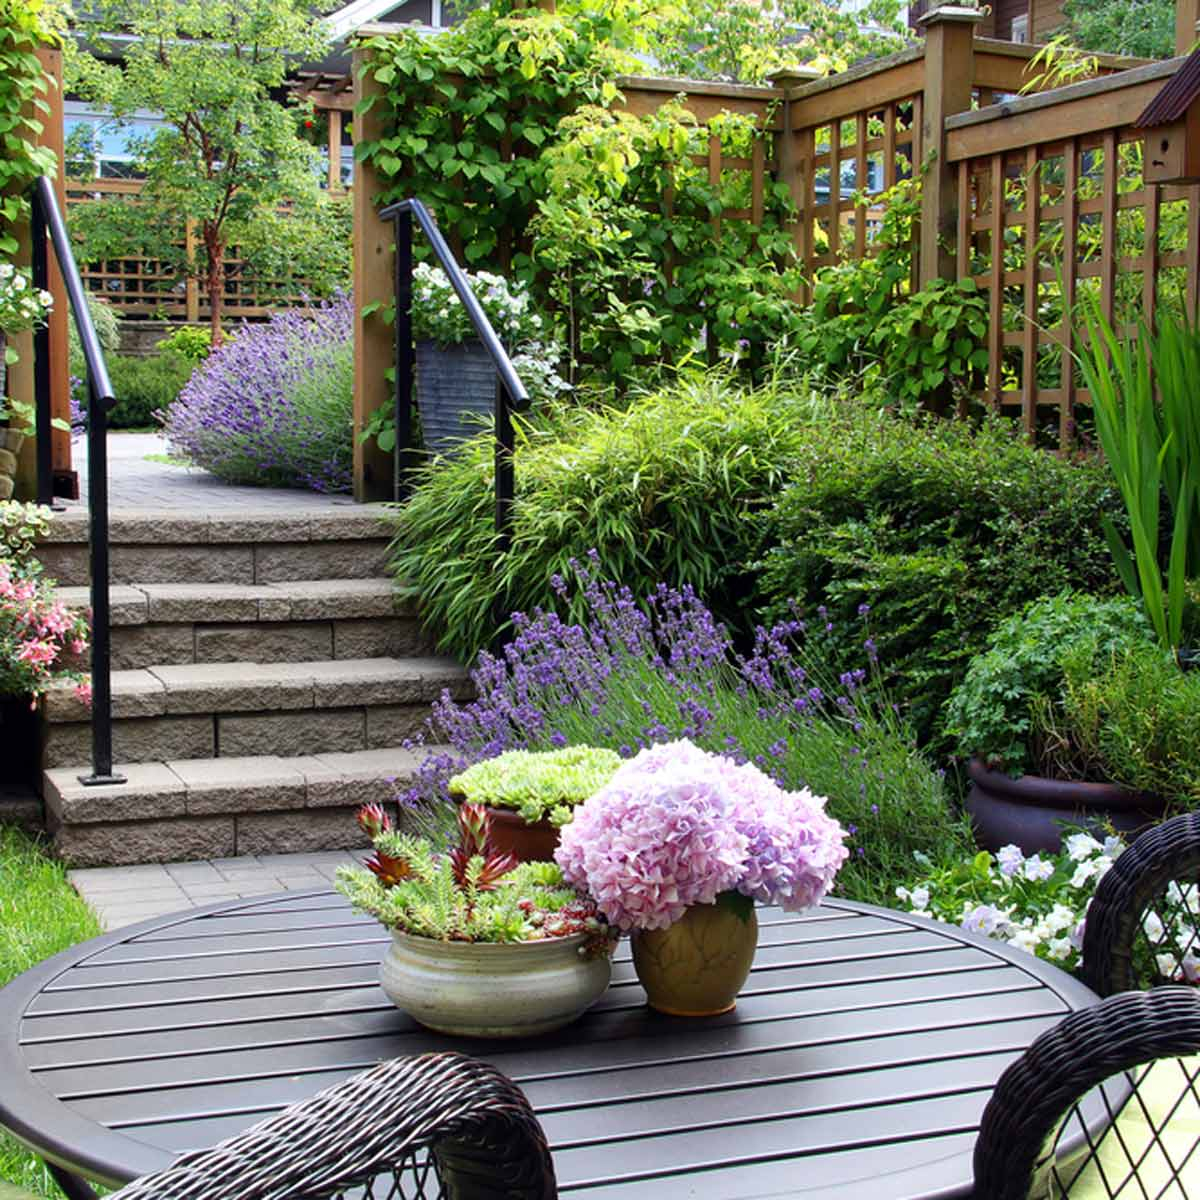 14 Small Yard Landscaping Ideas To Impress Family Handyman in 10 Genius Designs of How to Build Backyard Garden Ideas For Small Yards